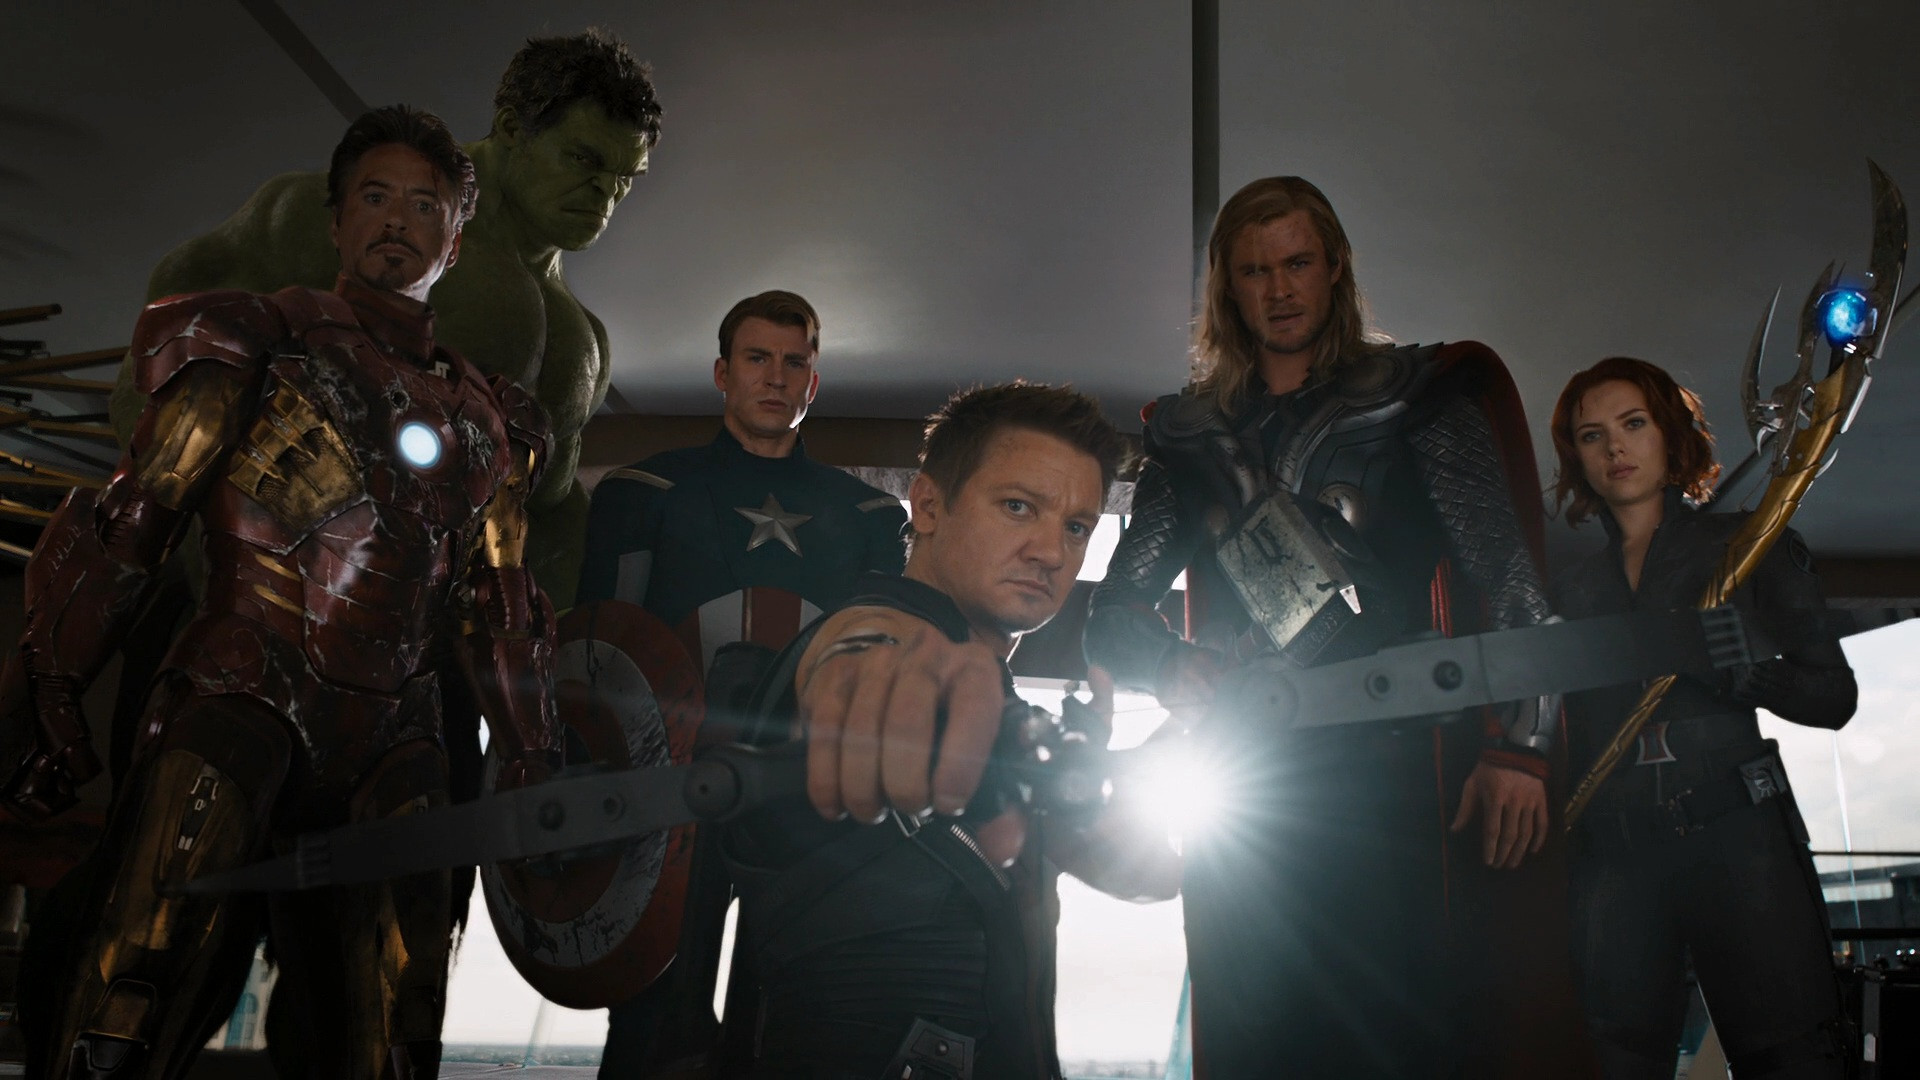 The Avengers pose around Loki with their weapons drawn